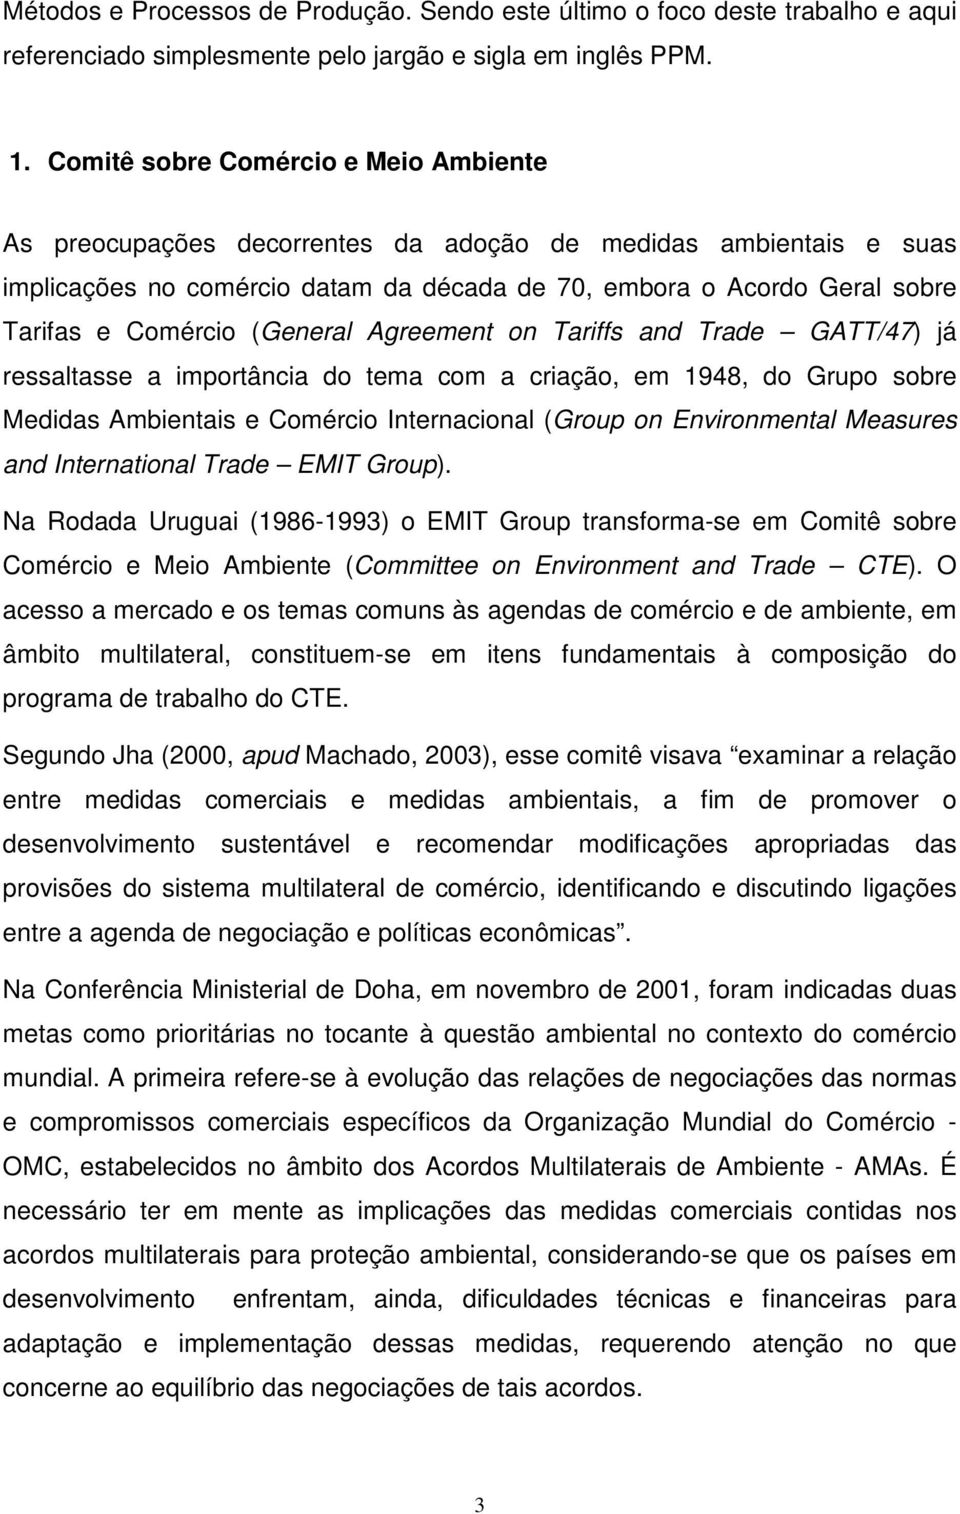 (General Agreement on Tariffs and Trade GATT/47) já ressaltasse a importância do tema com a criação, em 1948, do Grupo sobre Medidas Ambientais e Comércio Internacional (Group on Environmental